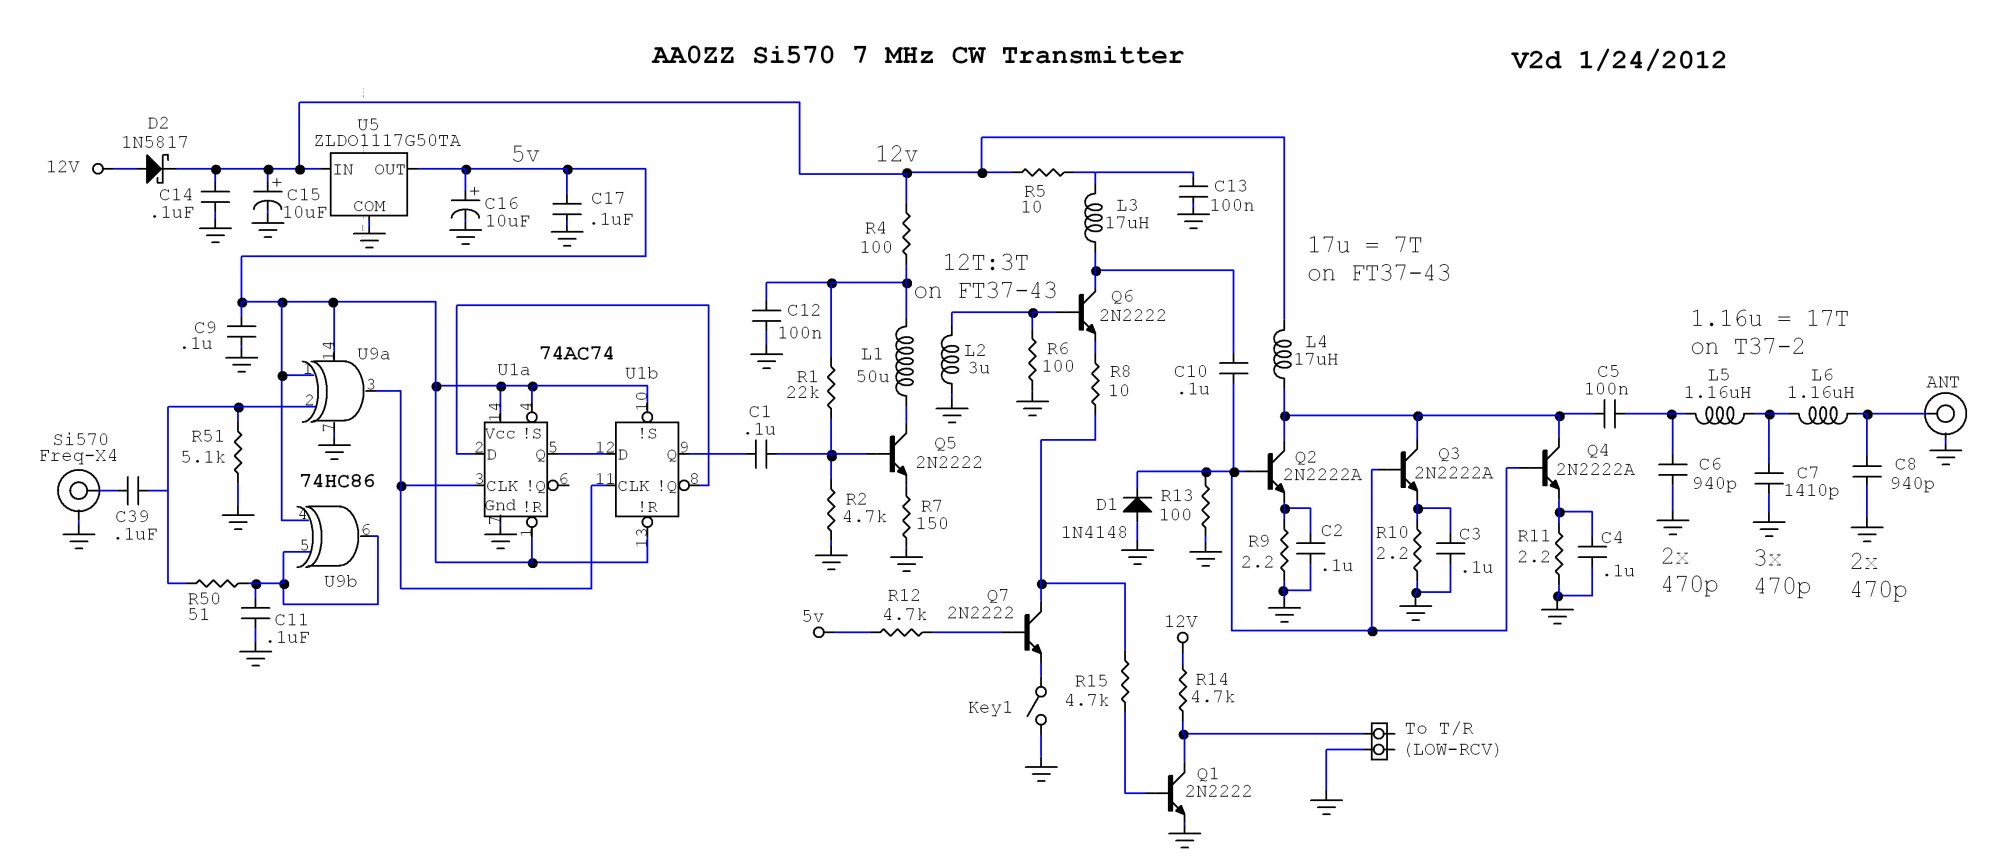 hight resolution of schematic aa0zz si570 in cw transmitter jpg format